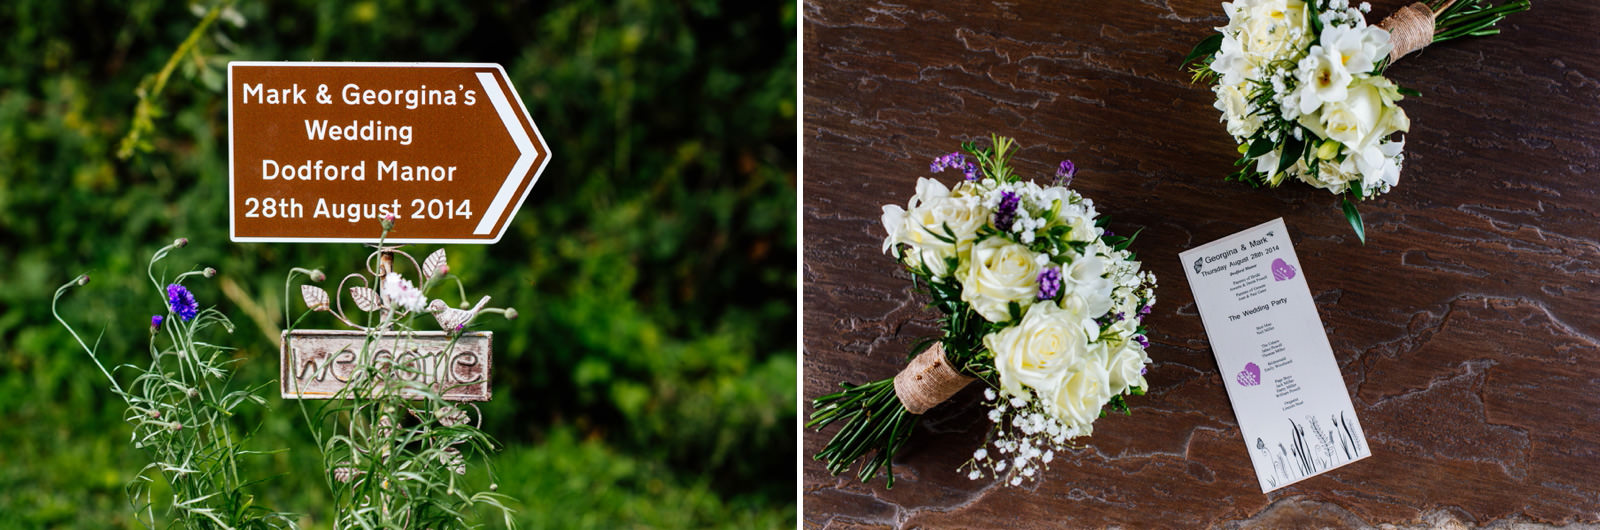 Georgina-&-Mark---Dodford-Manor-Wedding_0003